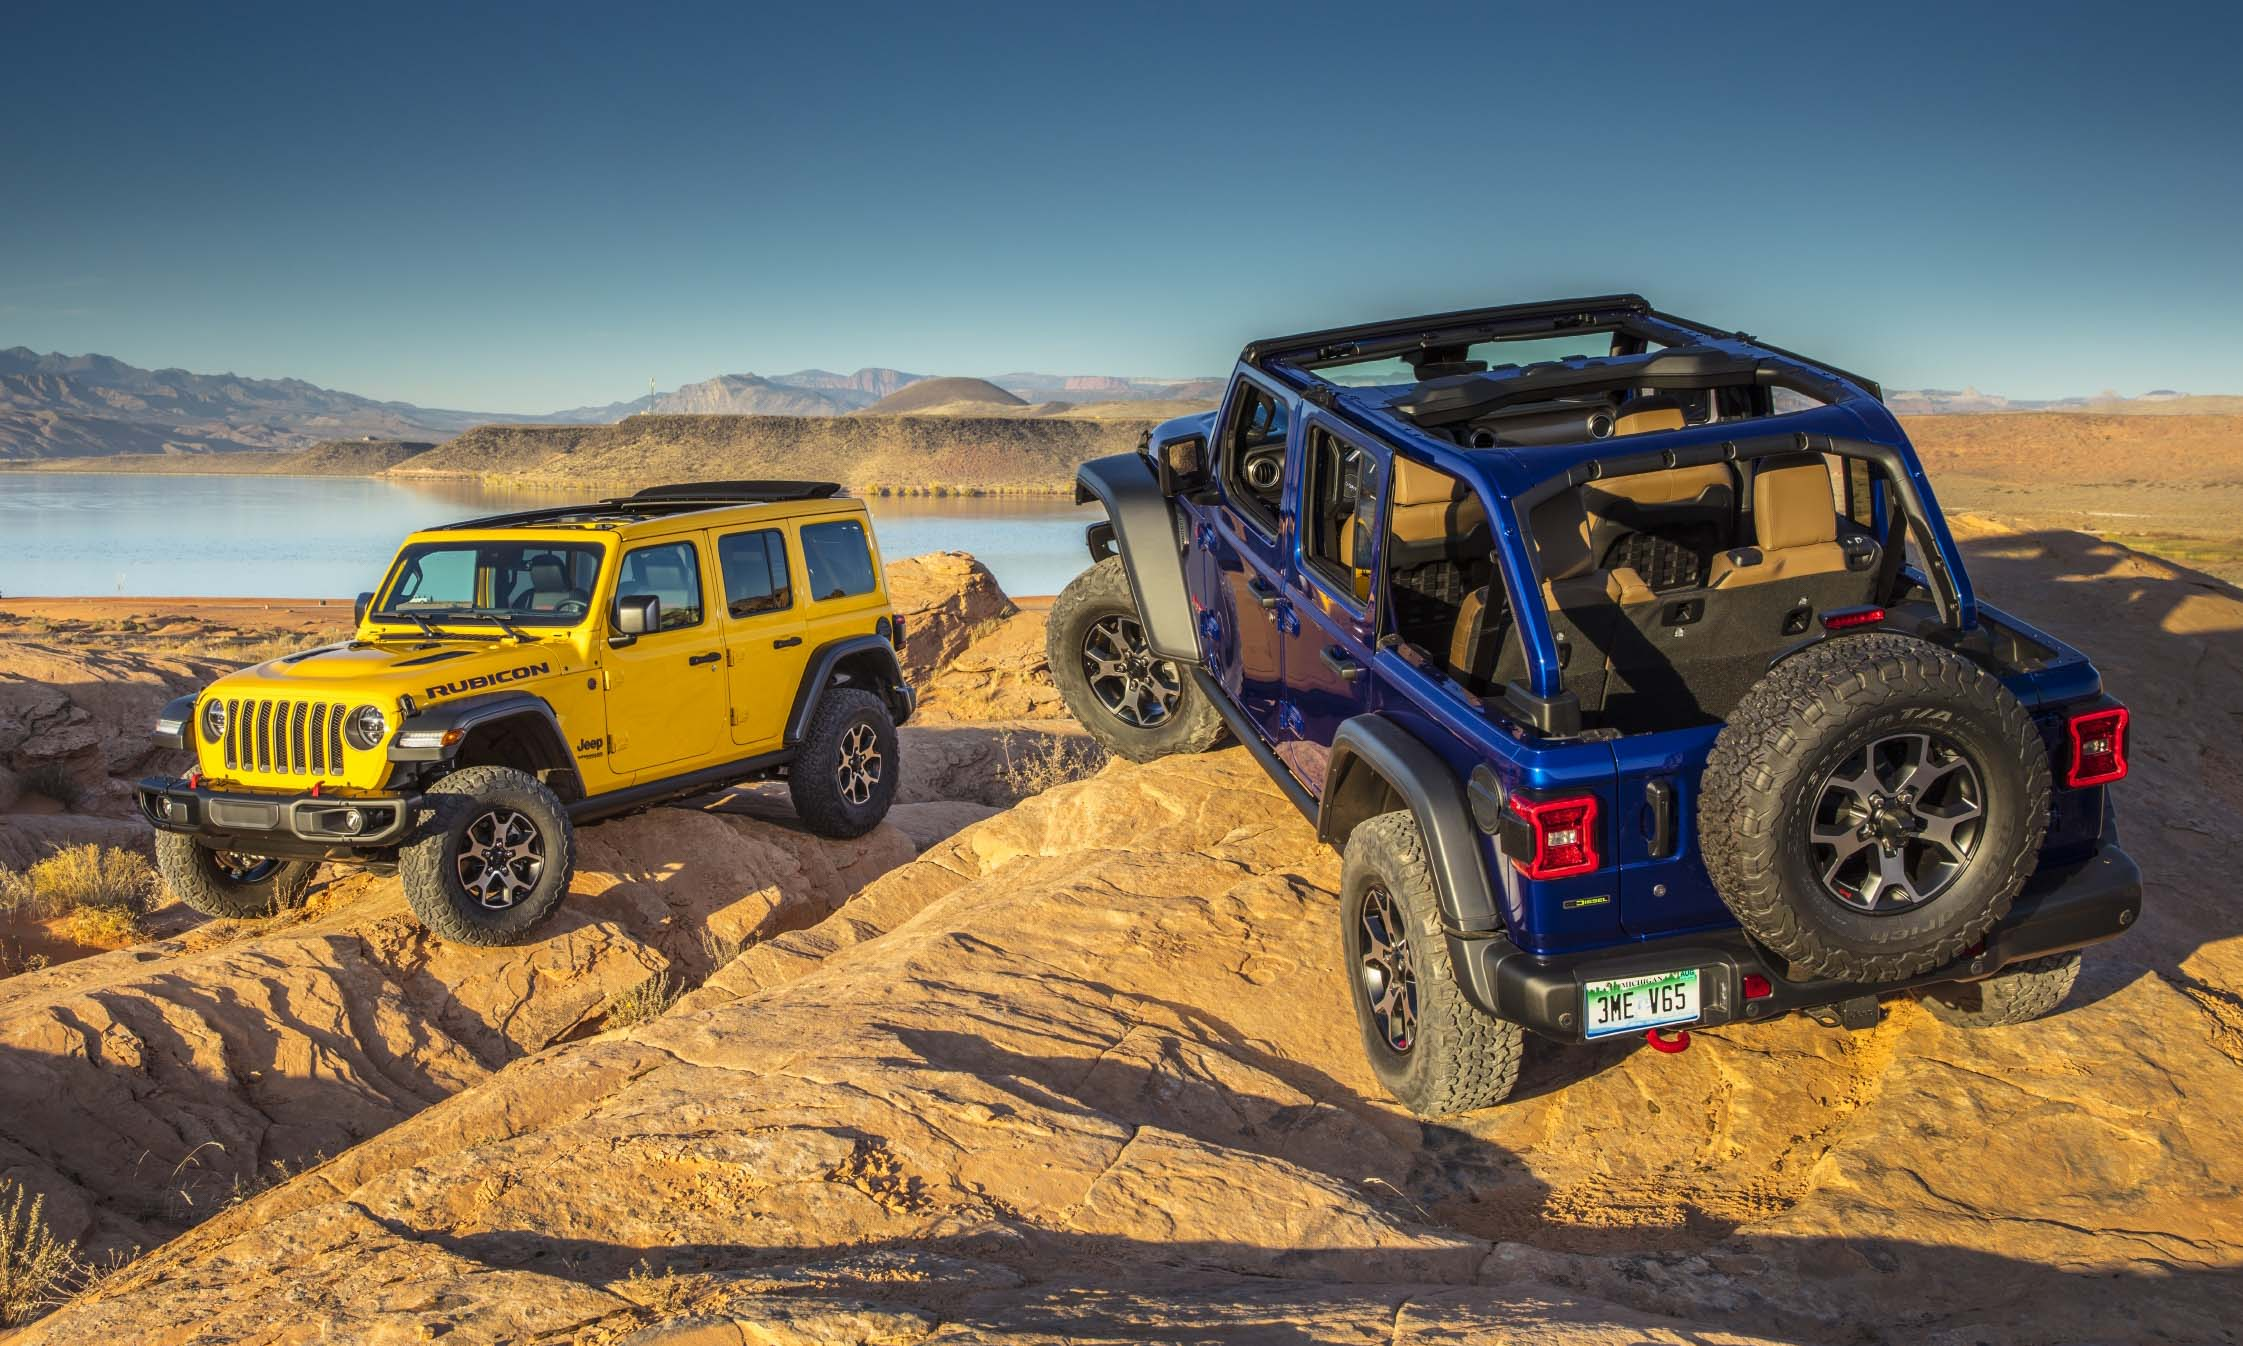 2021 Jeep Wrangler Jeep offers the 2021 Wrangler in five trim levels: Sport, Sport S, Sahara, Rubicon and High Altitude, with Sahara and High Altitude offered exclusively as a 4-door Unlimited and the other three available in both 2-door and 4-door Unlimited versions. For 2021 Jeep will also add the plug-in hybrid Wrangler 4xe, high-performance Wrangler Rubicon 392 and two new limited editions: Islander and 80th Anniversary. For 2021 Jeep also offers Willys, Freedom, Sport Altitude and Sahara Altitude limited edition. Available powertrains included the 285-horsepower Pentastar V6, a new turbocharged 4-cylinder engine with eTorque technology producing 270 horsepower and 290 lb-ft of torque, a 3.6-liter V6 with mild-hybrid eTorque assist, and a 3.0-liter V6 EcoDiesel producing 260 horsepower and 442 lb-ft of torque. For 2021 Wrangler offers the TrailCam forward-facing off-road camera with an 8.4-inch touchscreen that can be accessed through available Off-road Pages. 2021 Jeep Wrangler 4xe In September 2020 Jeep announced a new plug-in hybrid Wrangler 4xe with electric-only mode — including while off-road — with the same off-pavement capabilities as its non-electric siblings. Wrangler 4xe is powered by a 2.0-liter turbocharged 4-cylinder gas engine and two electric motors for a total output of 375 horsepower and 470 lb-ft of torque. Wrangler 4xe EPA fuel-economy ratings have not been released, although Jeep estimates 50 MPGe in electric mode and an electric-only range of about 25 miles. All high-voltage electronics that connect the battery to the powertrain are sealed and waterproof, ensuring that Wrangler can still navigate up to 30 inches of water without any danger of short circuiting. 2021 Jeep Wrangler Rubicon 392 In November 2020 Jeep announced the 2021 Wrangler Rubicon 392, the first Wrangler powered by a V8 engine since 1981. In the '80s Wrangler's 5.0-liter V8 produced a mere 125 horsepower. Fast-forward 40 years and Wrangler Rubicon 392 gets a 6.4-liter 392-c